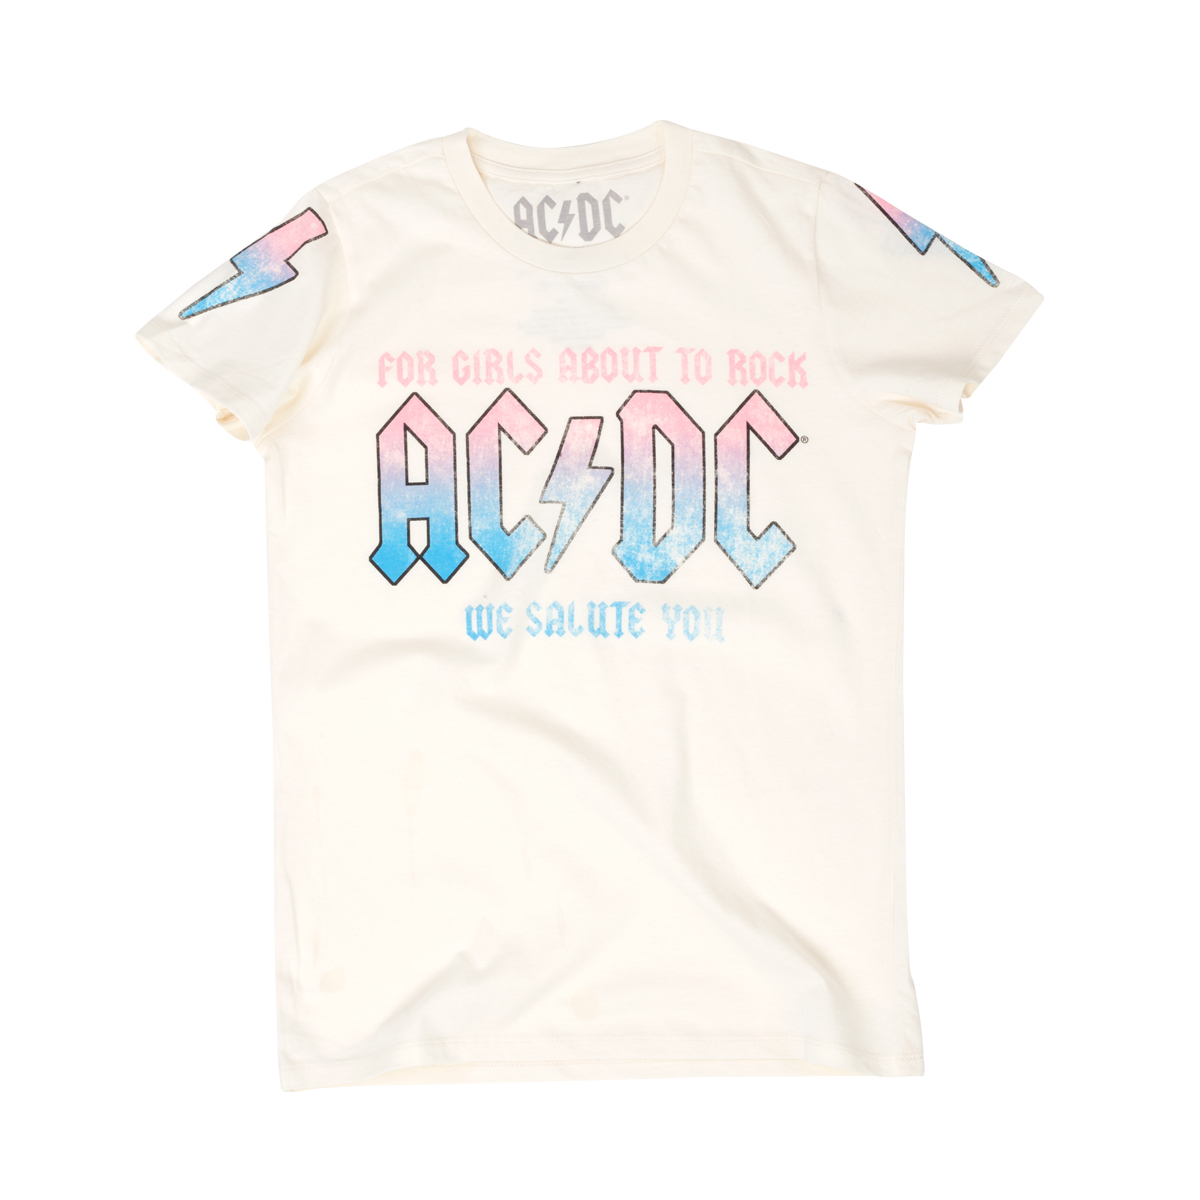 AC/DC For Girls About To Rock White Junior T-Shirt